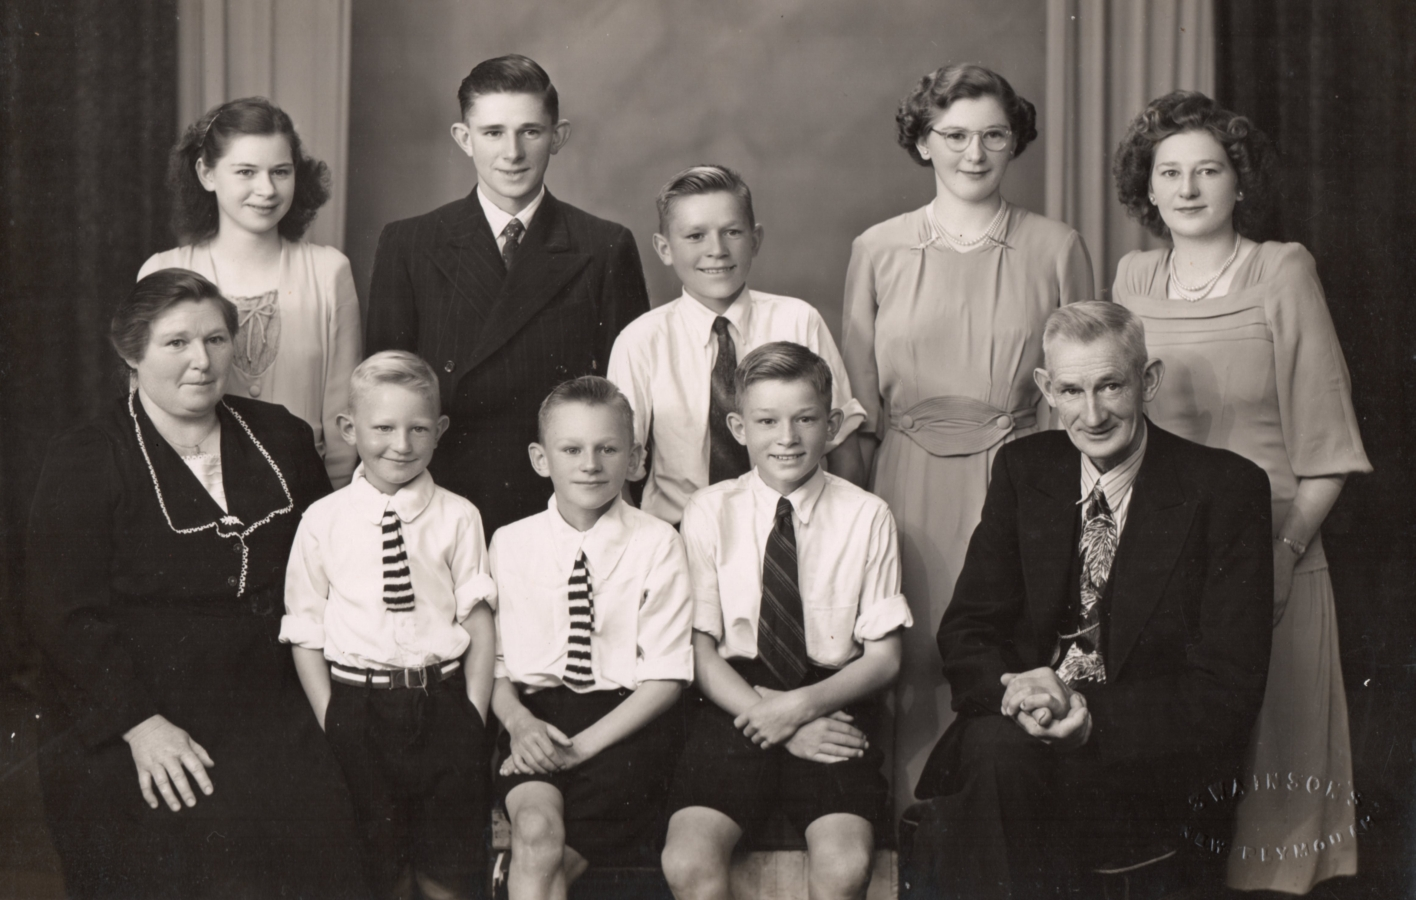 Black and white studio photograph of the family: Jacob and Joseph in suits and ties, and the four younger boys in white shirts and ties,  Ellen in a formal dress suit, and the girls in dresses. All are smiling sweetly.